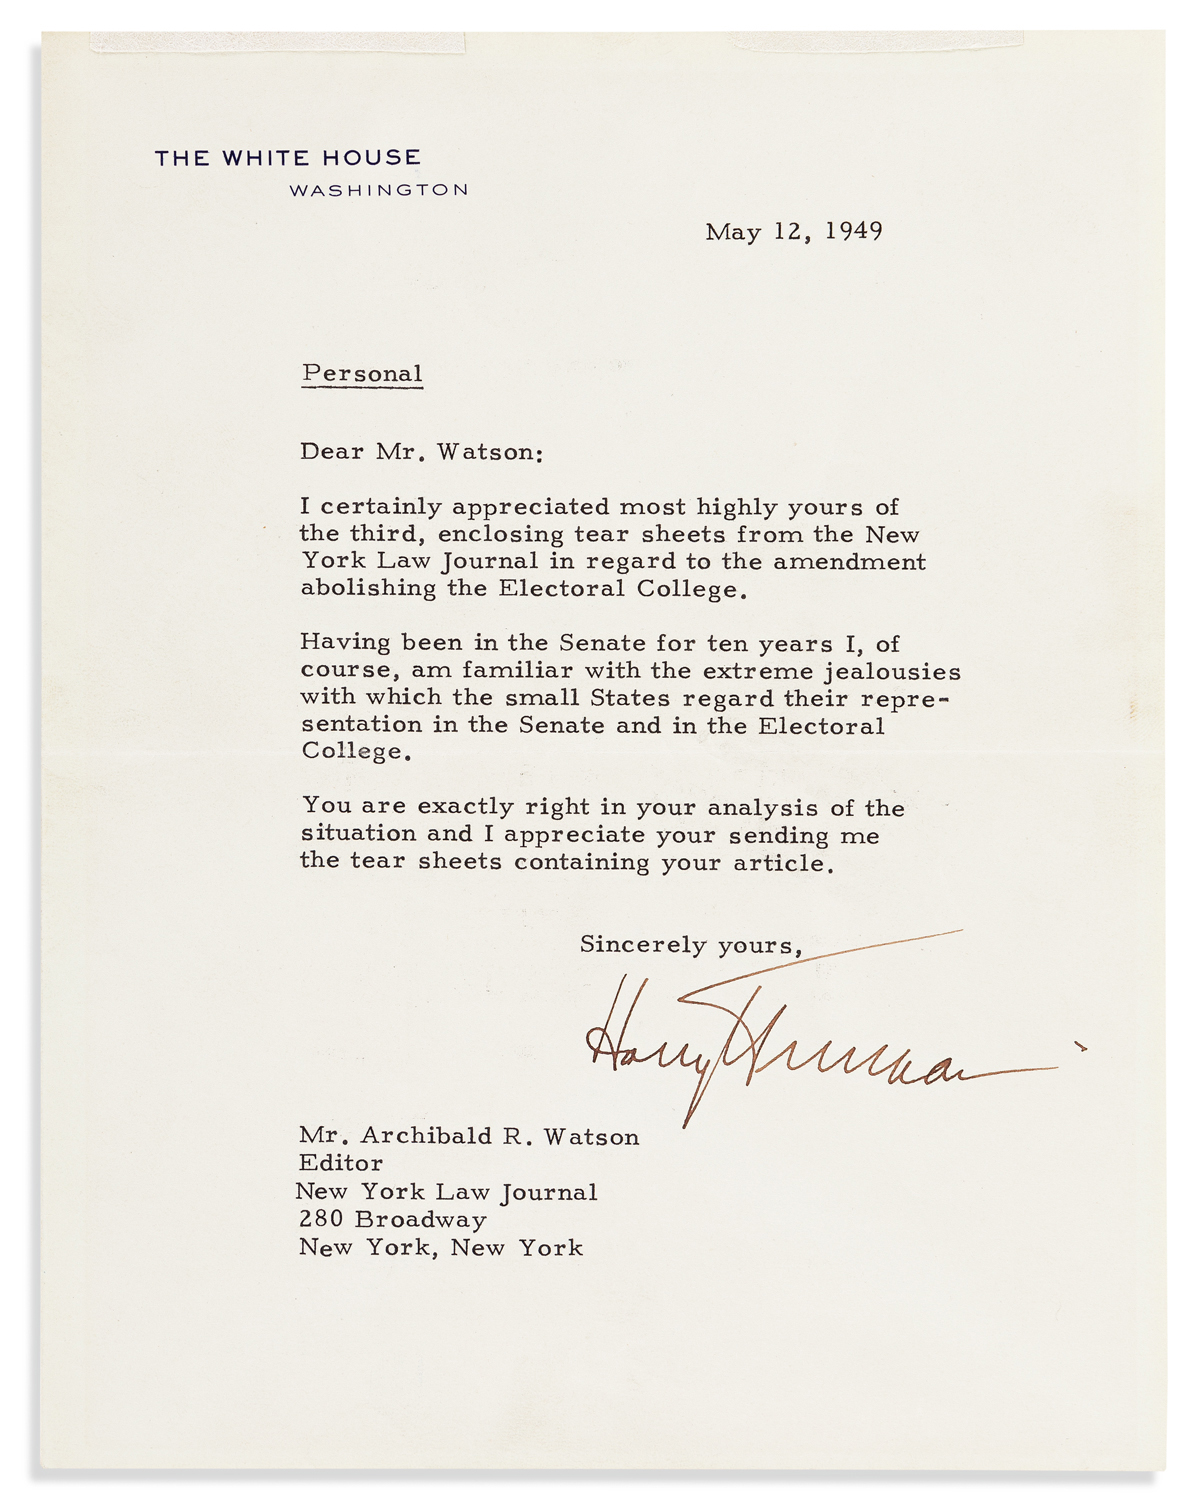 TRUMAN, HARRY S. Typed Letter Signed, as President, to Editor of the New York Law Journal Archibald Watson,